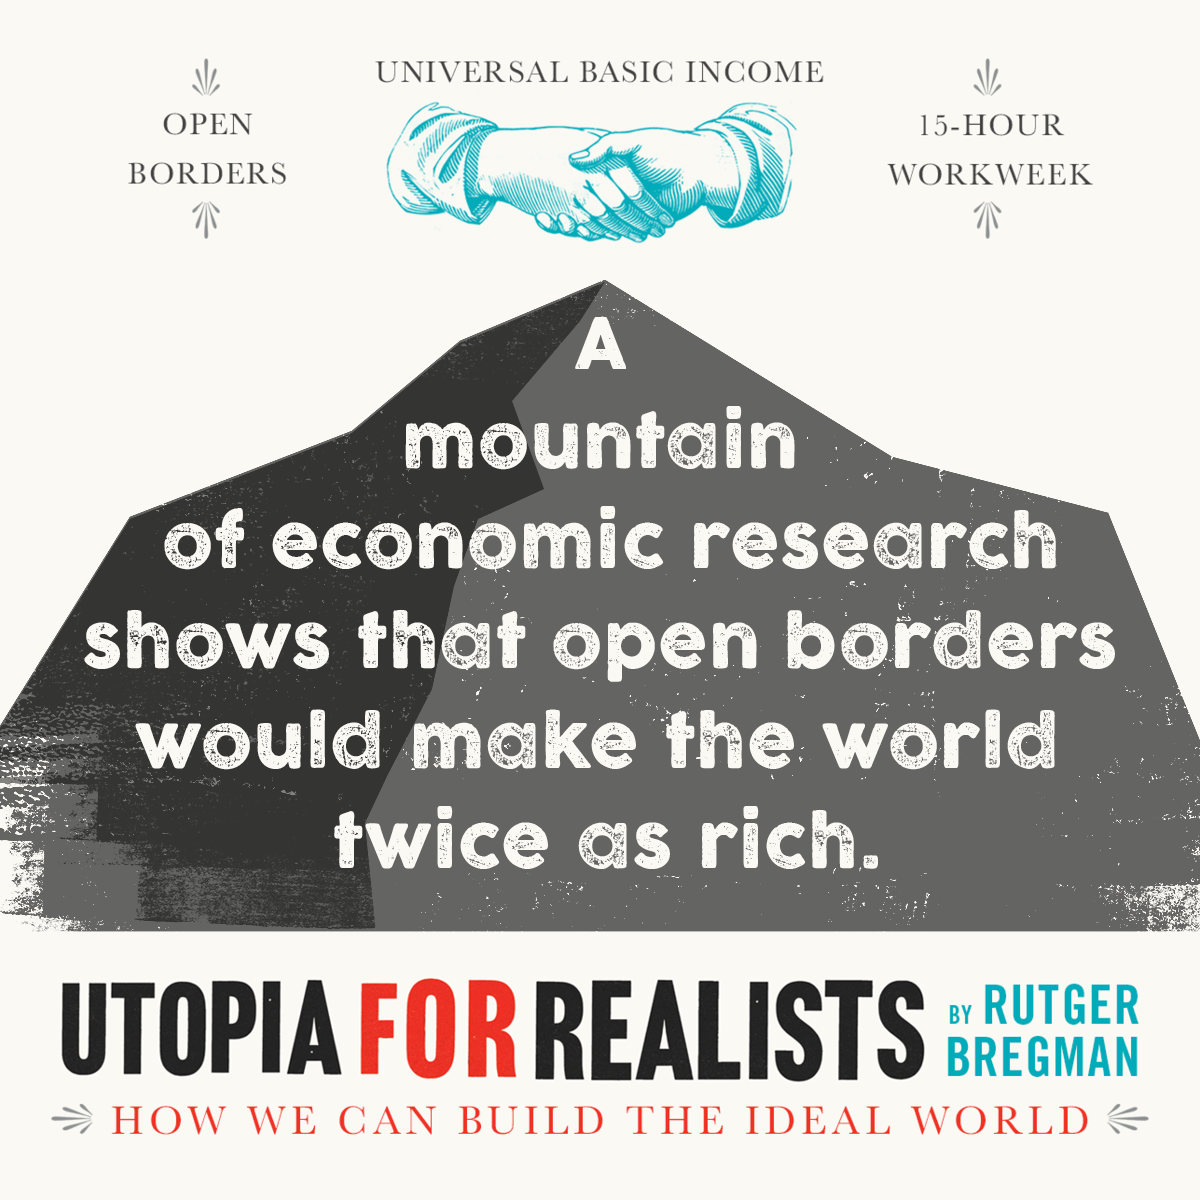 utopia for realists how we can build the ideal world rutger view larger